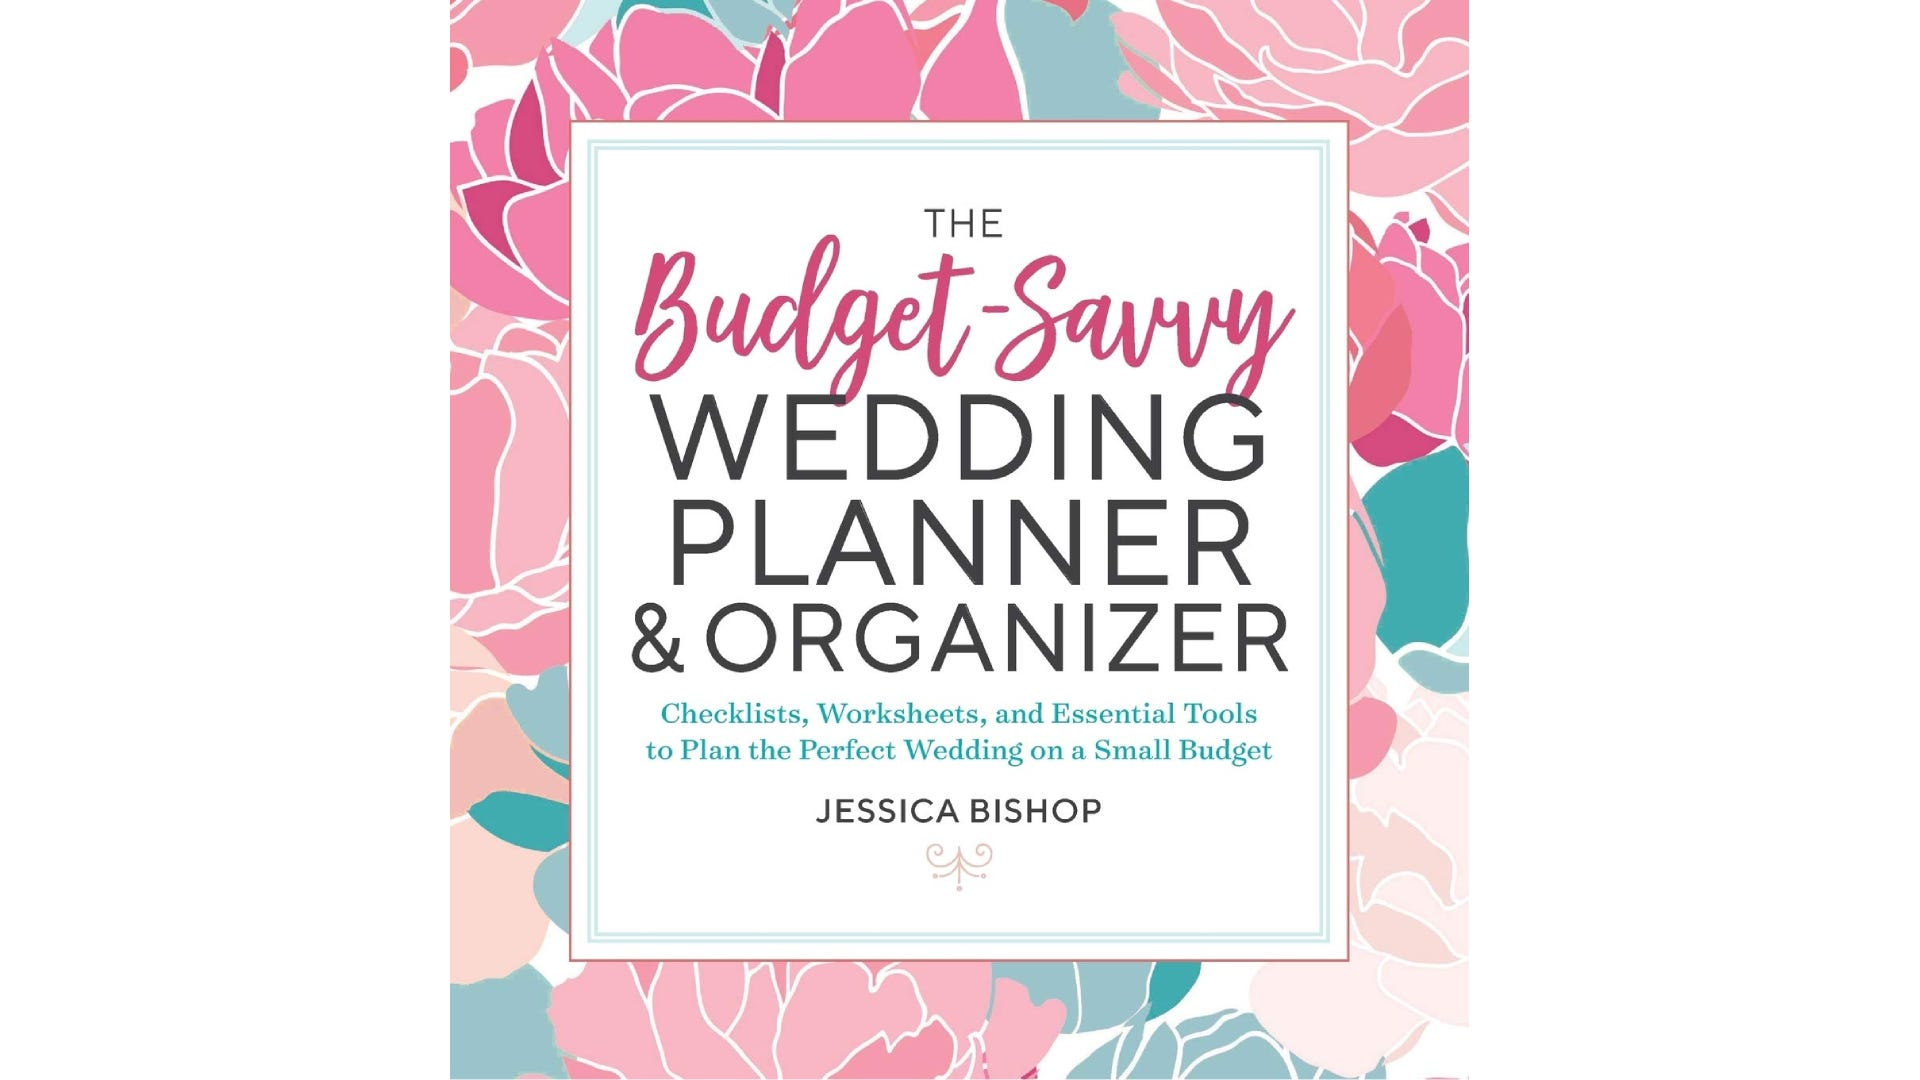 The cover of budget-savvy wedding planning book with pink or teal colors.